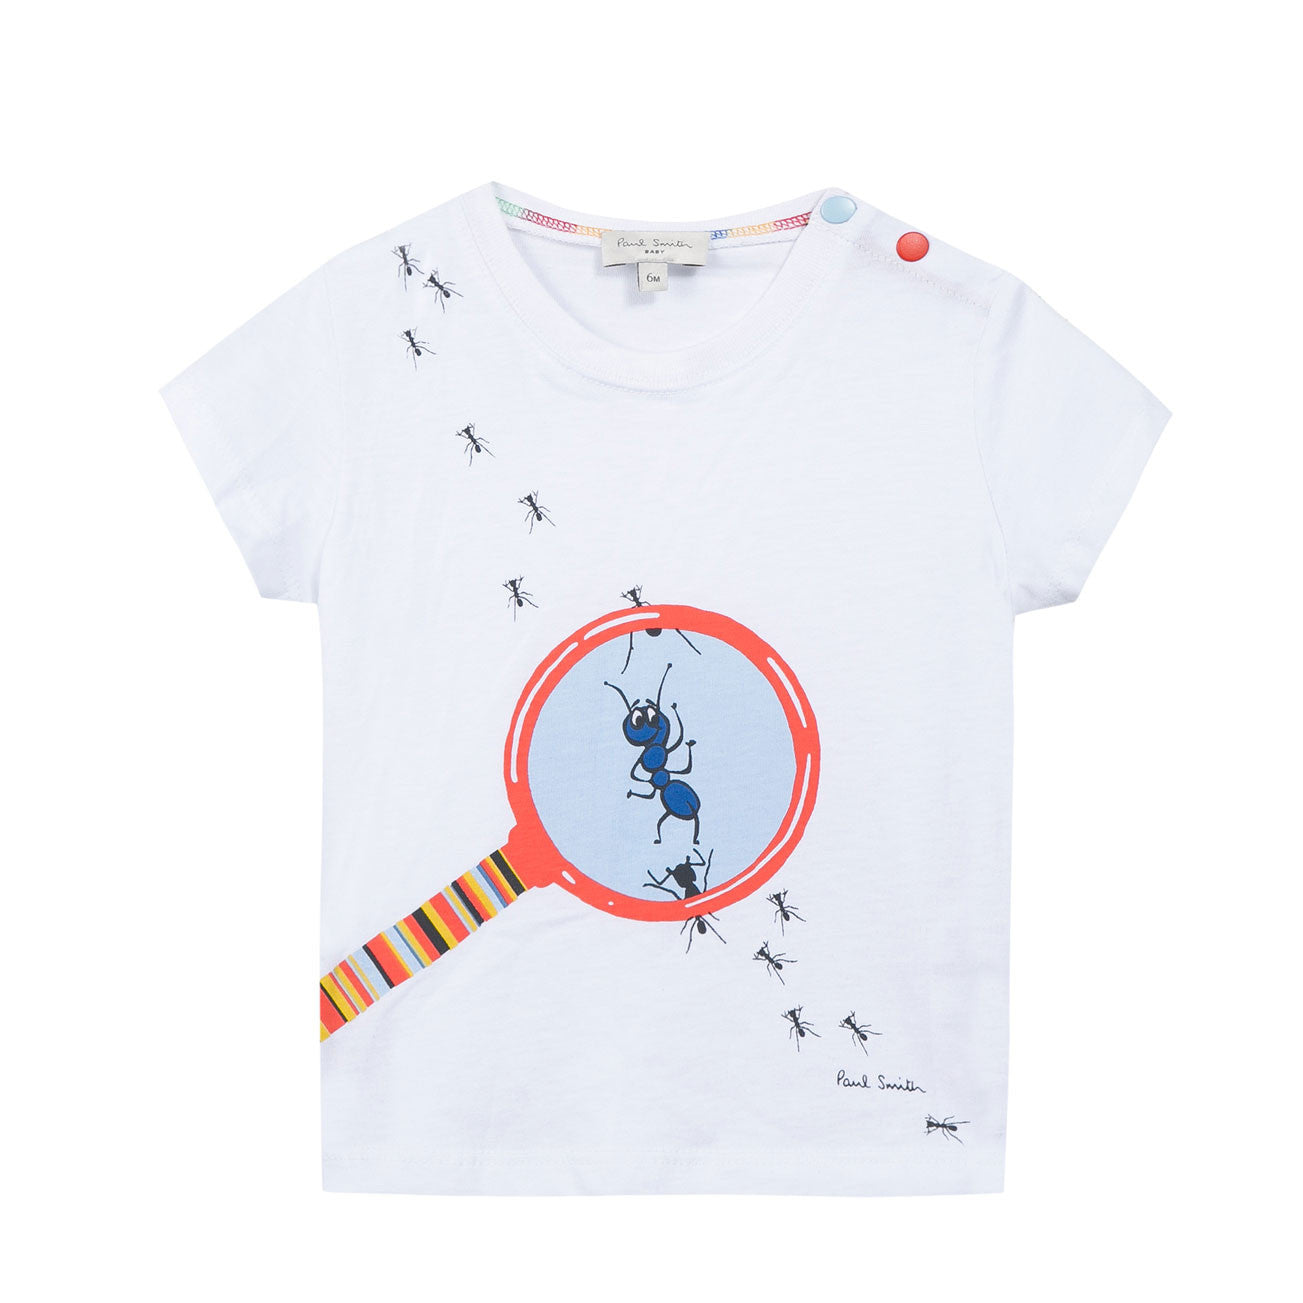 Paul Smith Baby White Ant Tee - Ladida